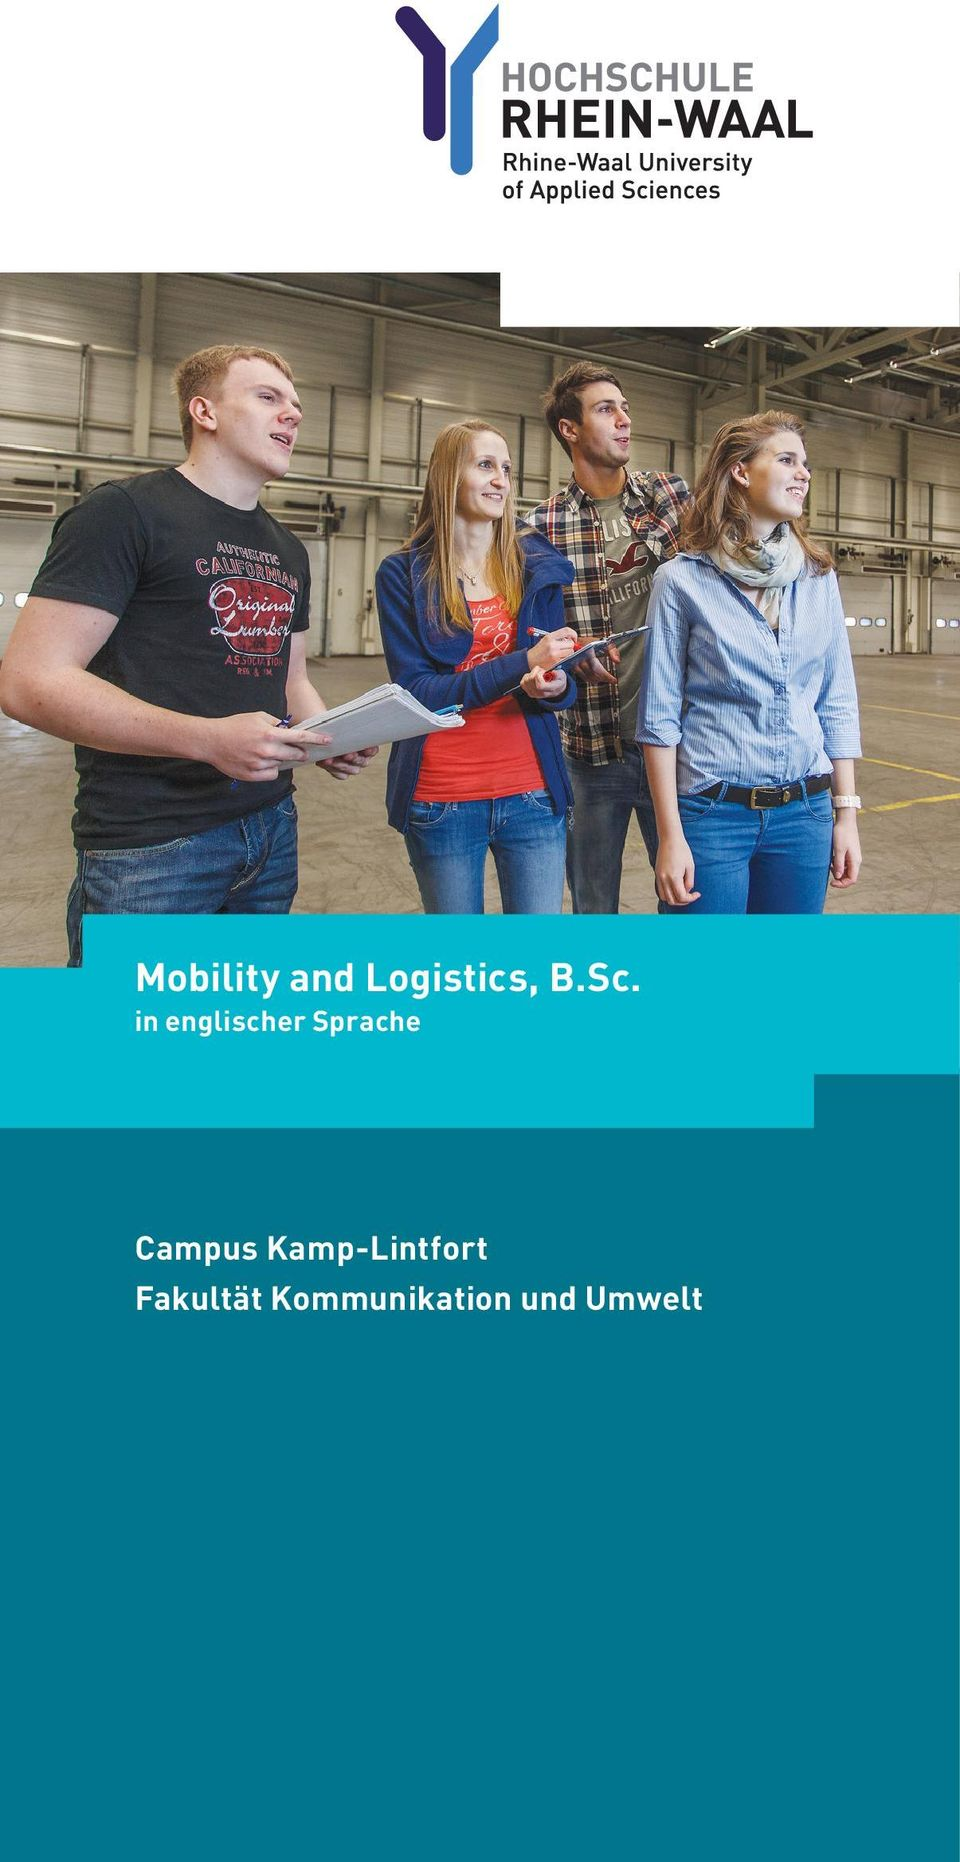 Campus Kamp-Lintfort